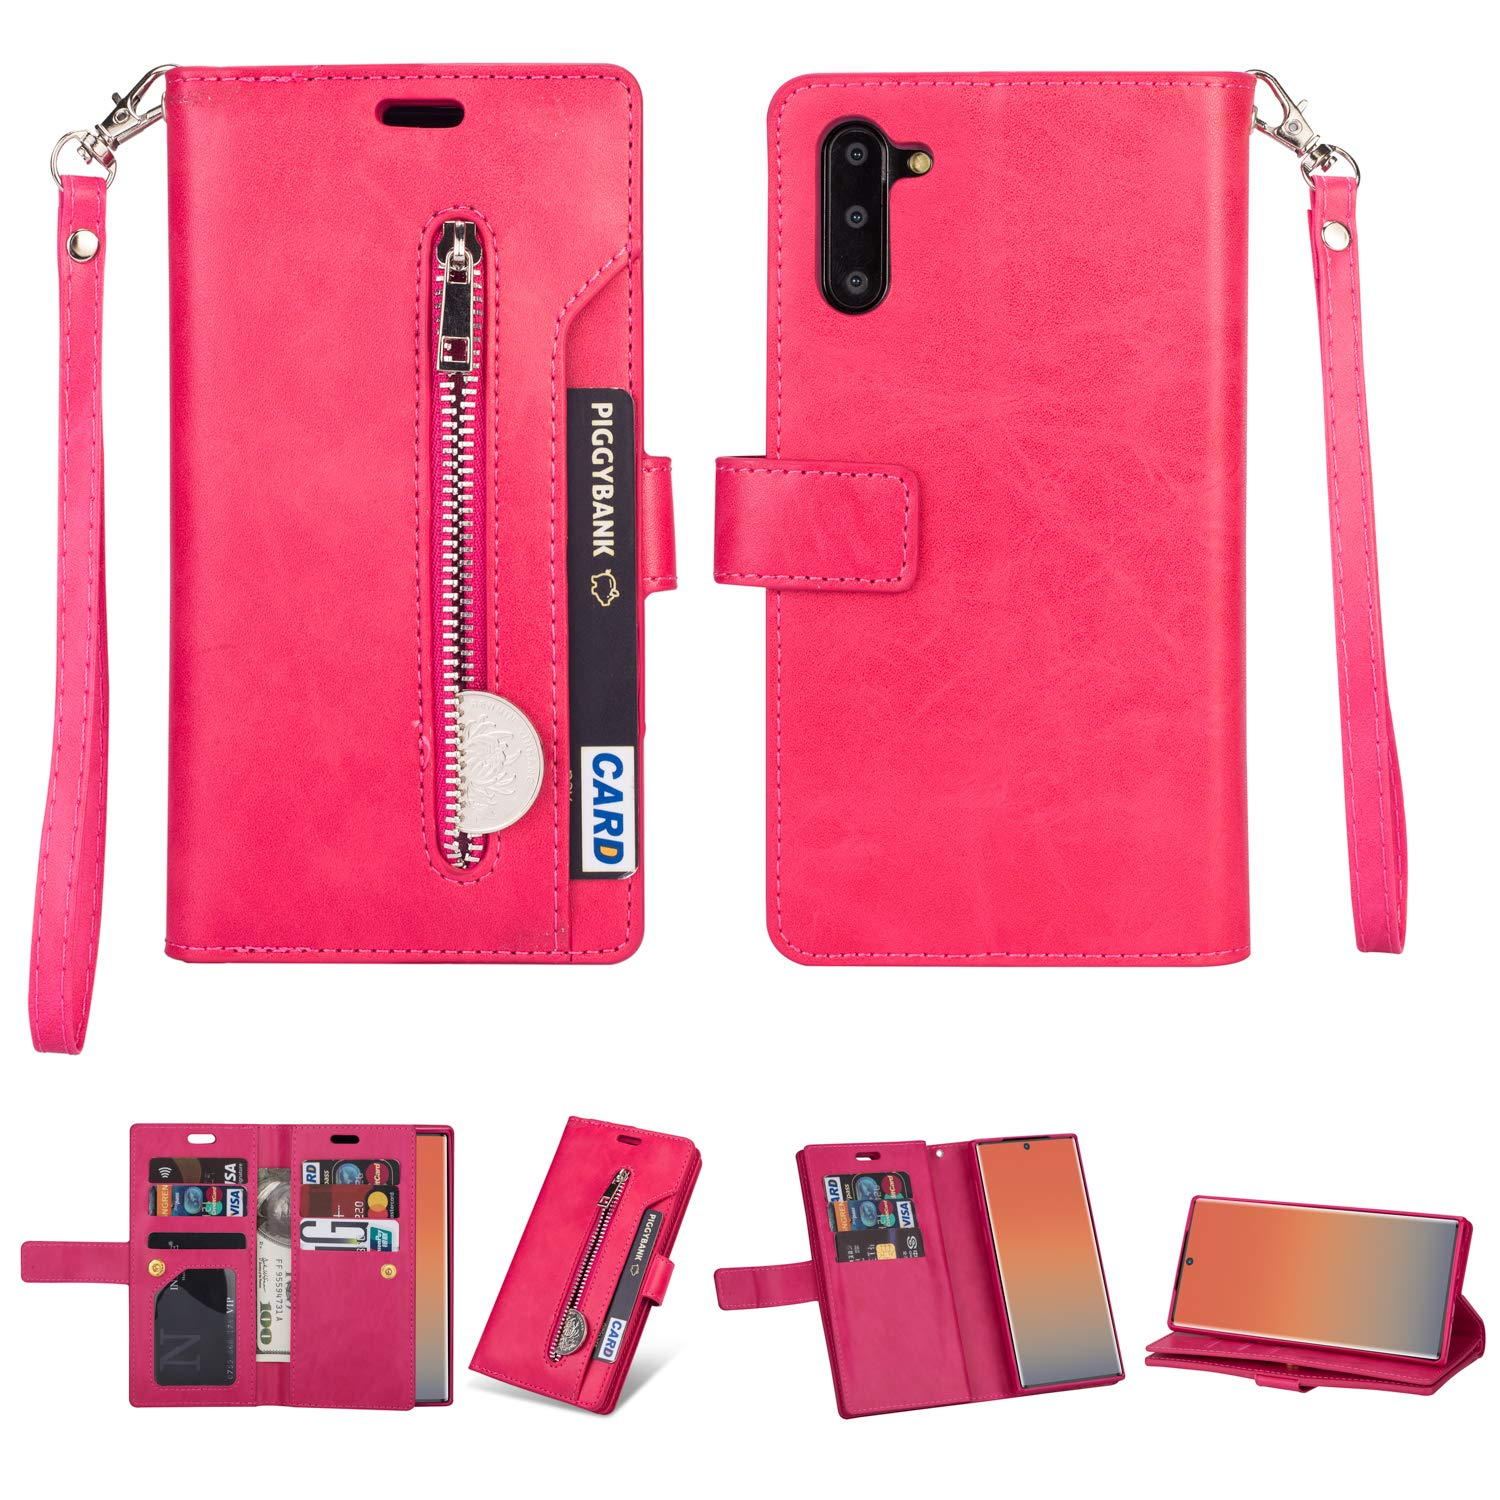 DAMONDY for Samsung Note 10 Case,Zipper Stand Wallet Purse 9 Card Slot ID Holders Design Flip Cover Pocket Purse Leather Magnetic Protective for Samsung Galaxy Note 10-hot Pink